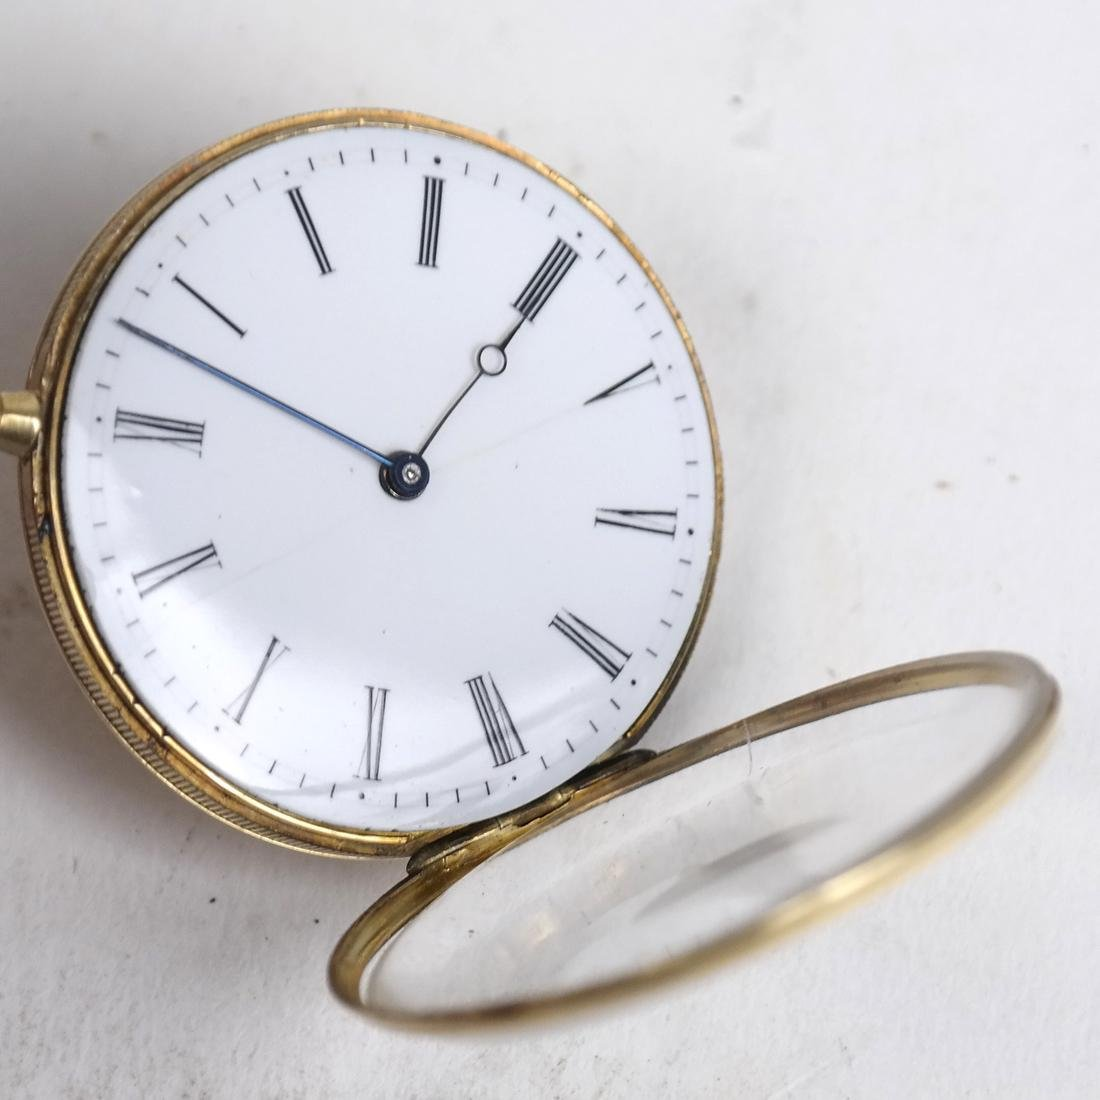 14k Yellow Gold Pocket Watch - 6